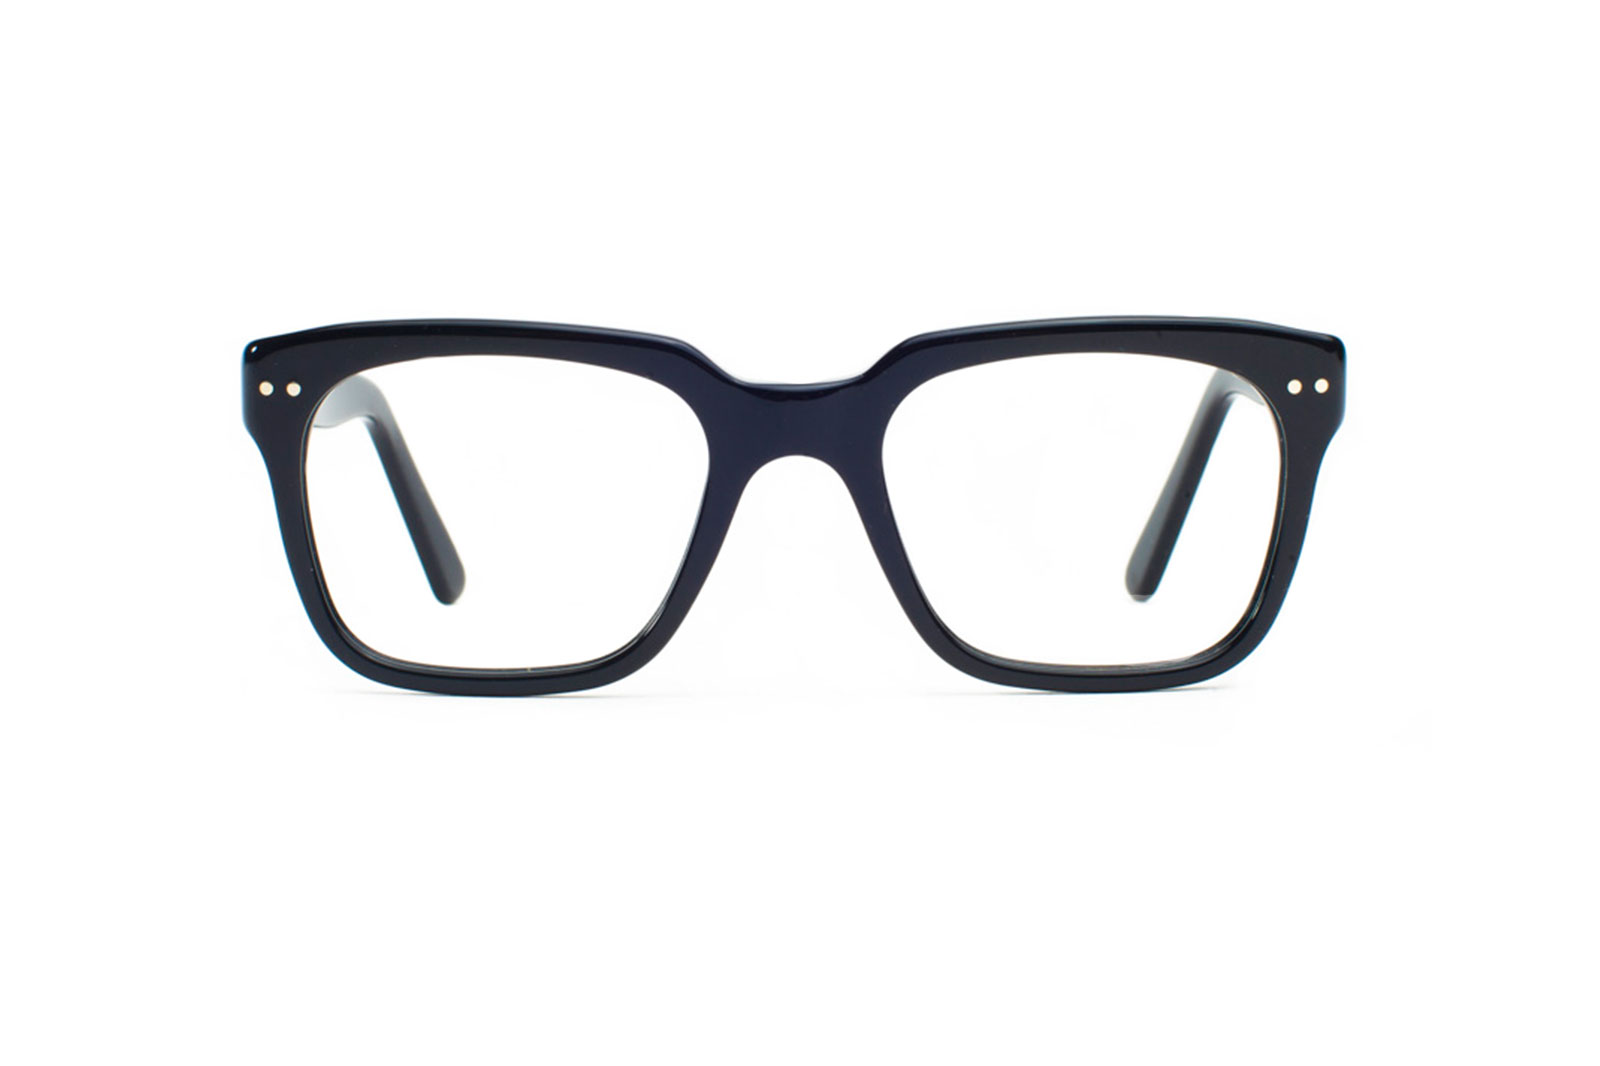 Boris Banovic Glasses